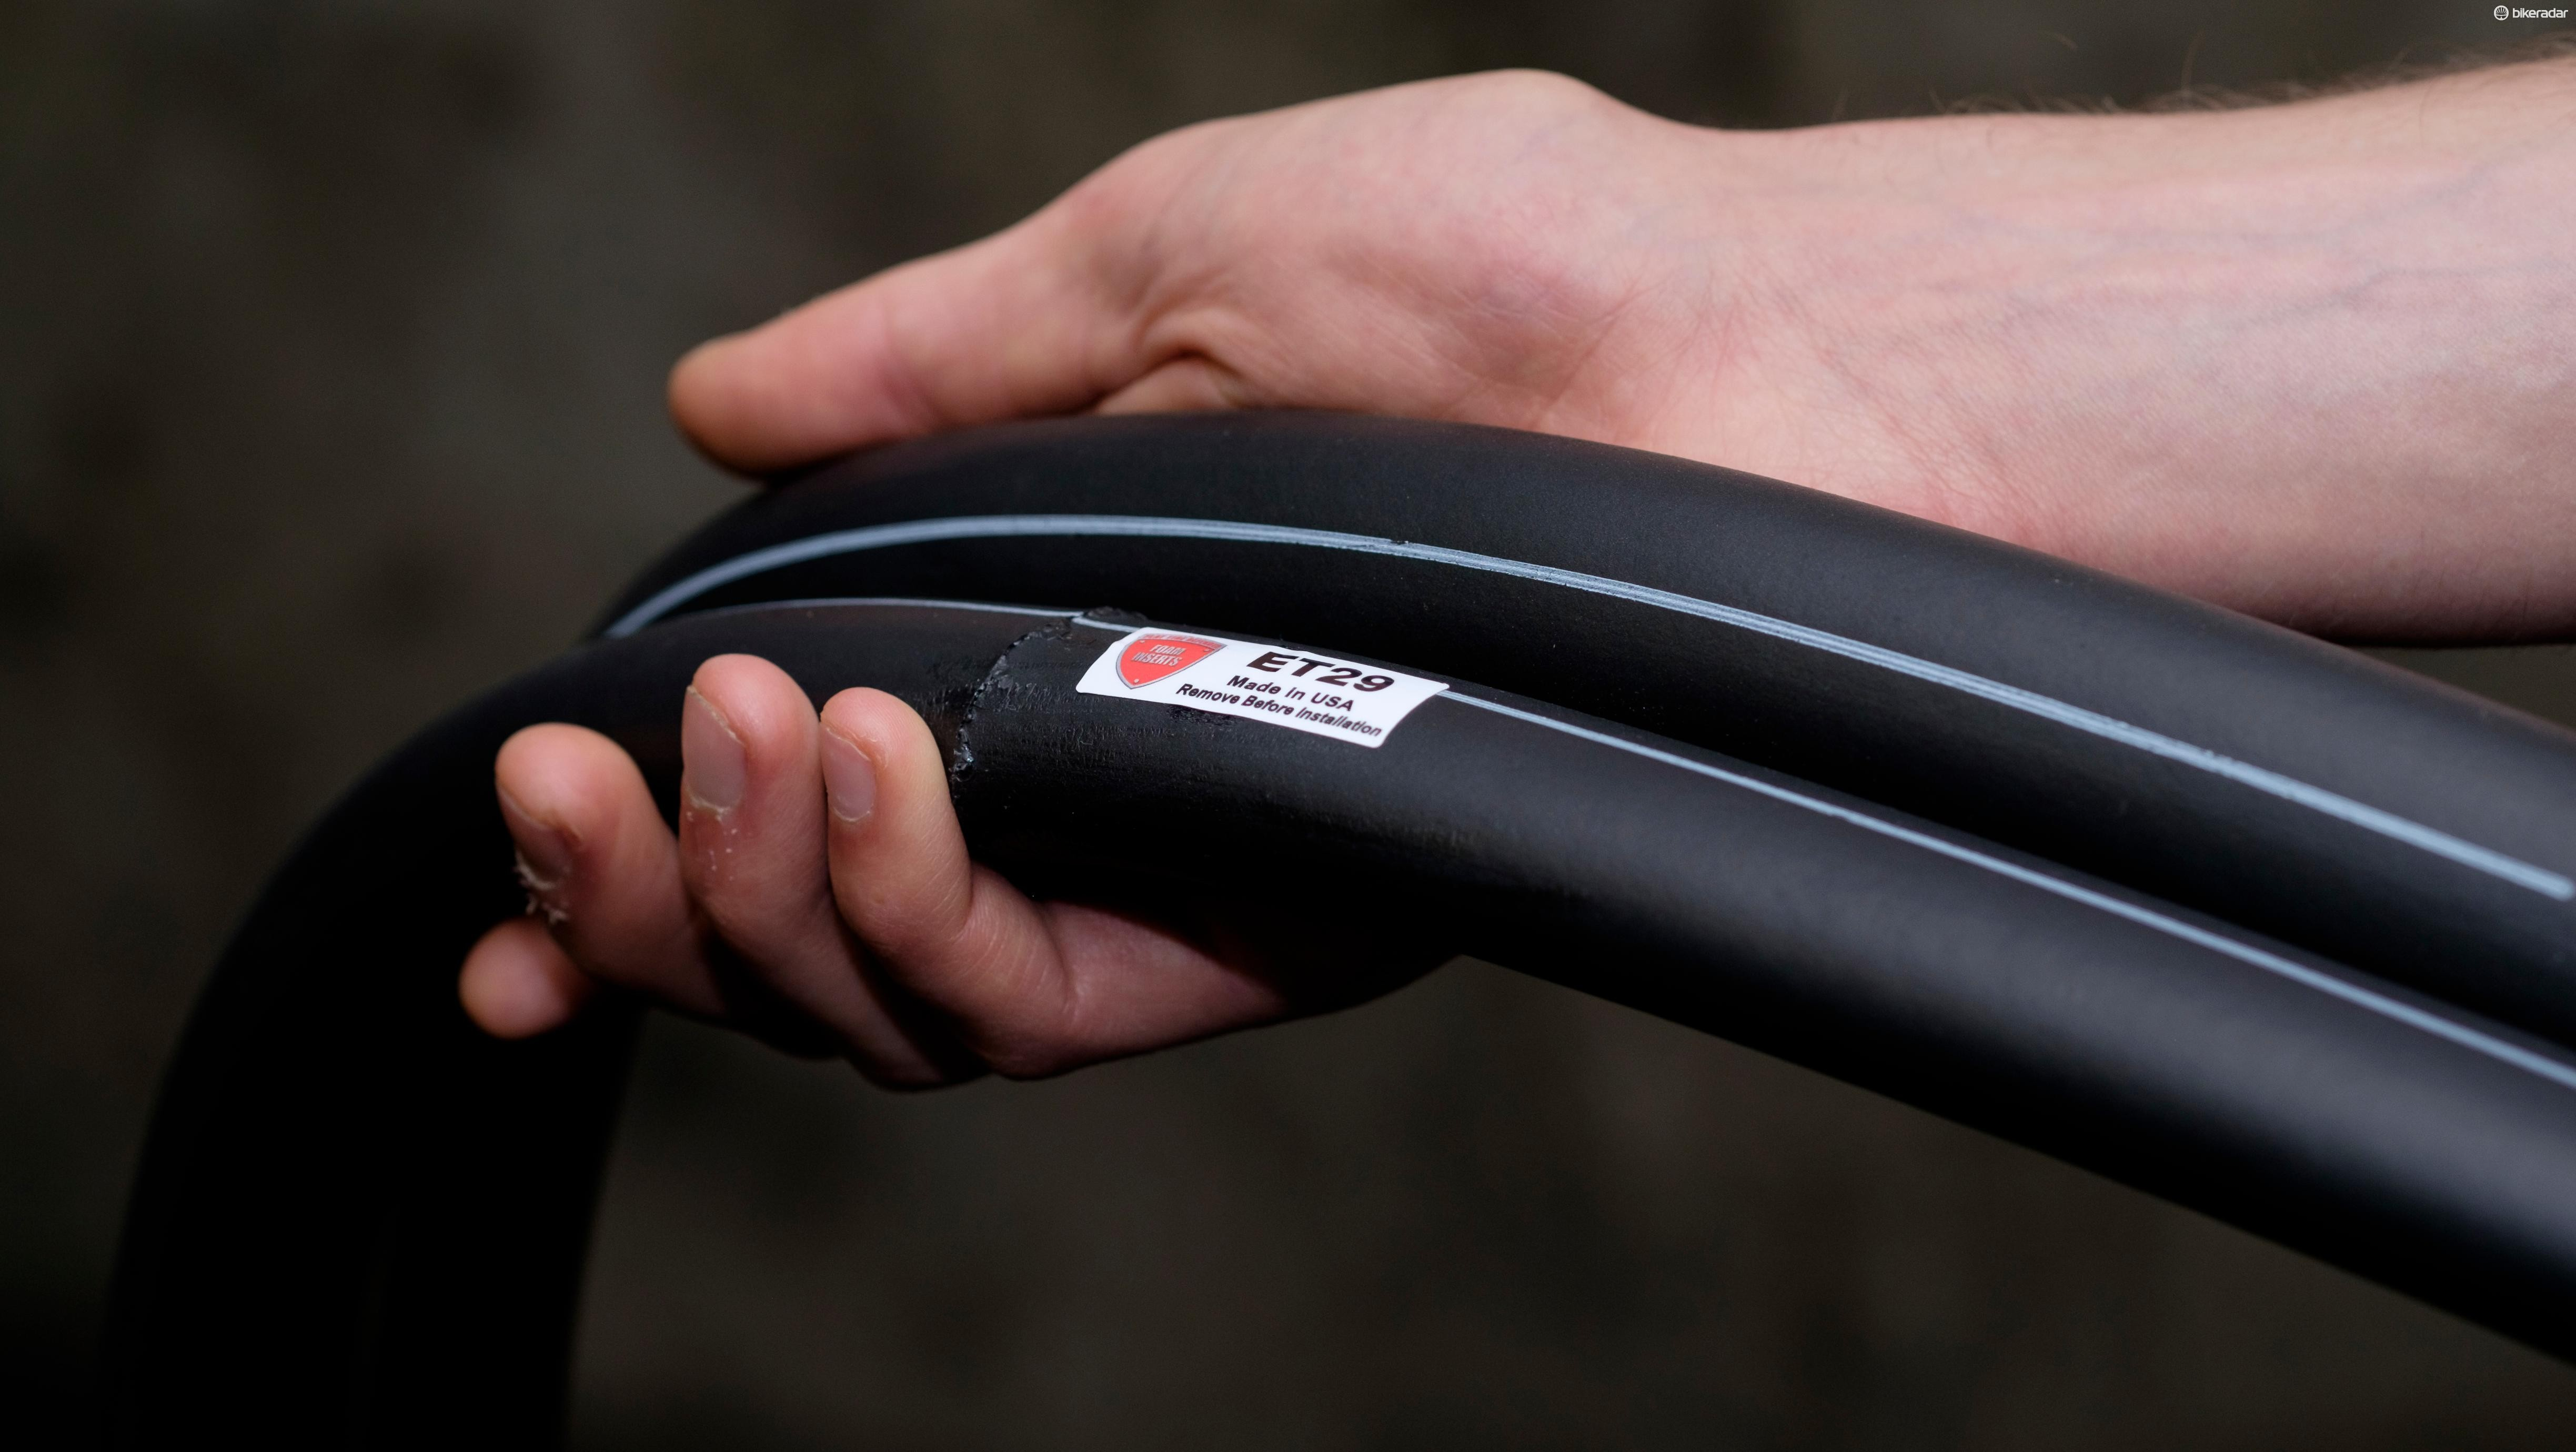 Flat Tire Defenders are designed to protect your tyres from flats